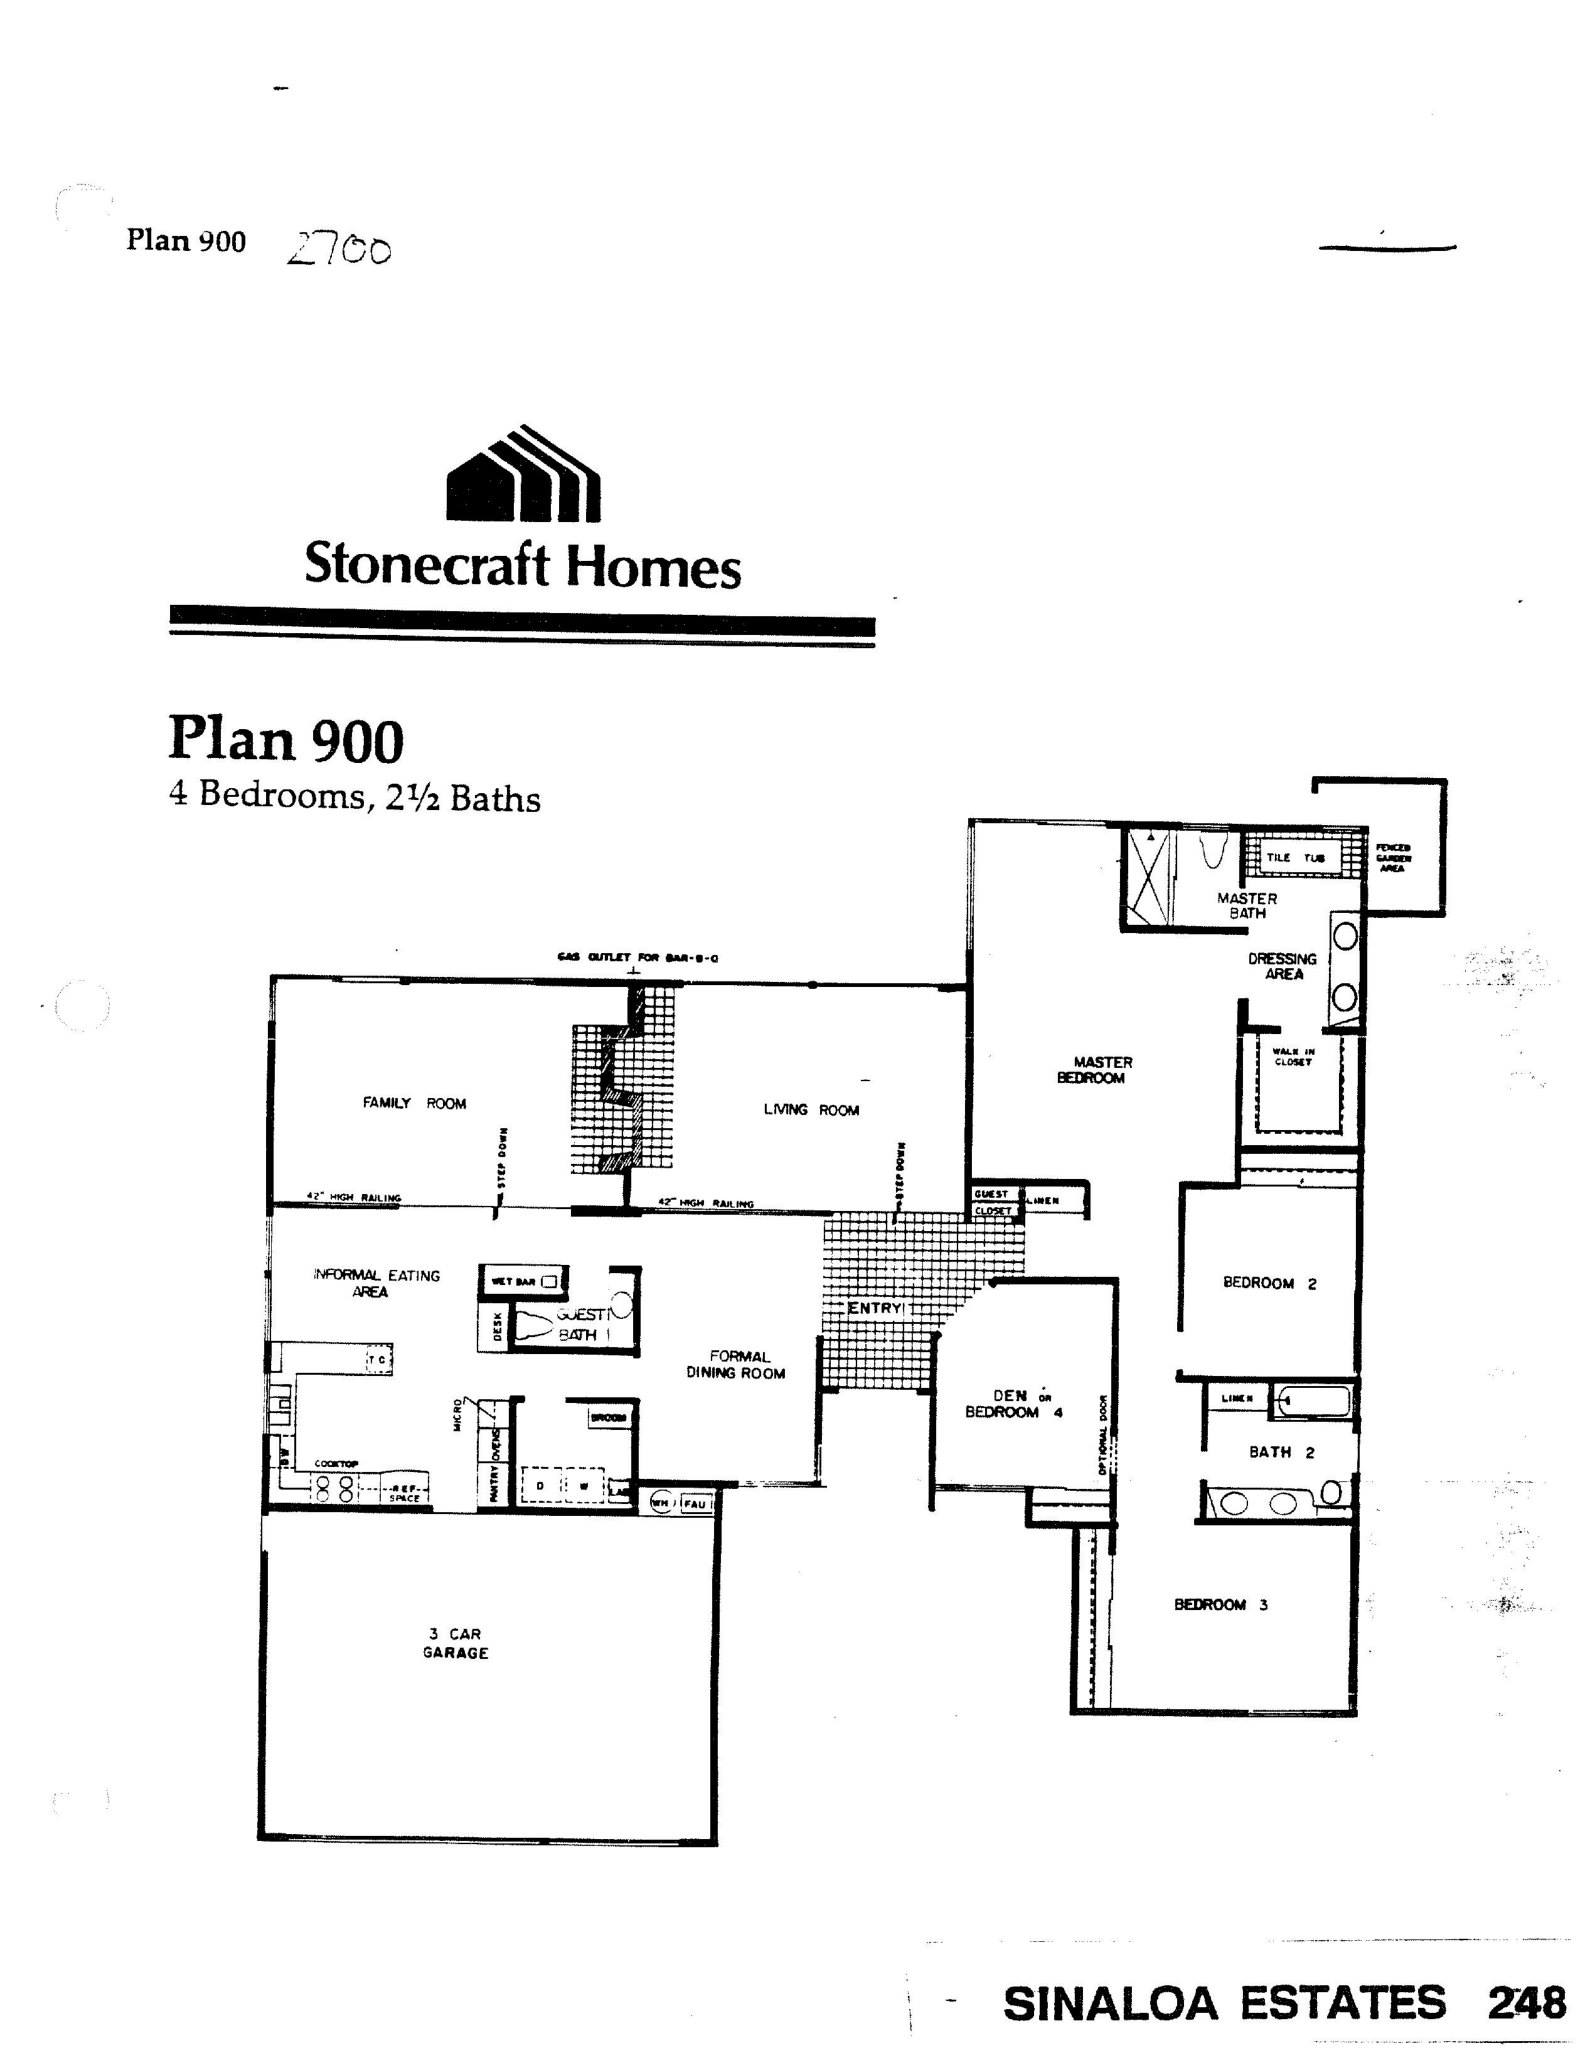 Sinaloa Estates - Plan 900